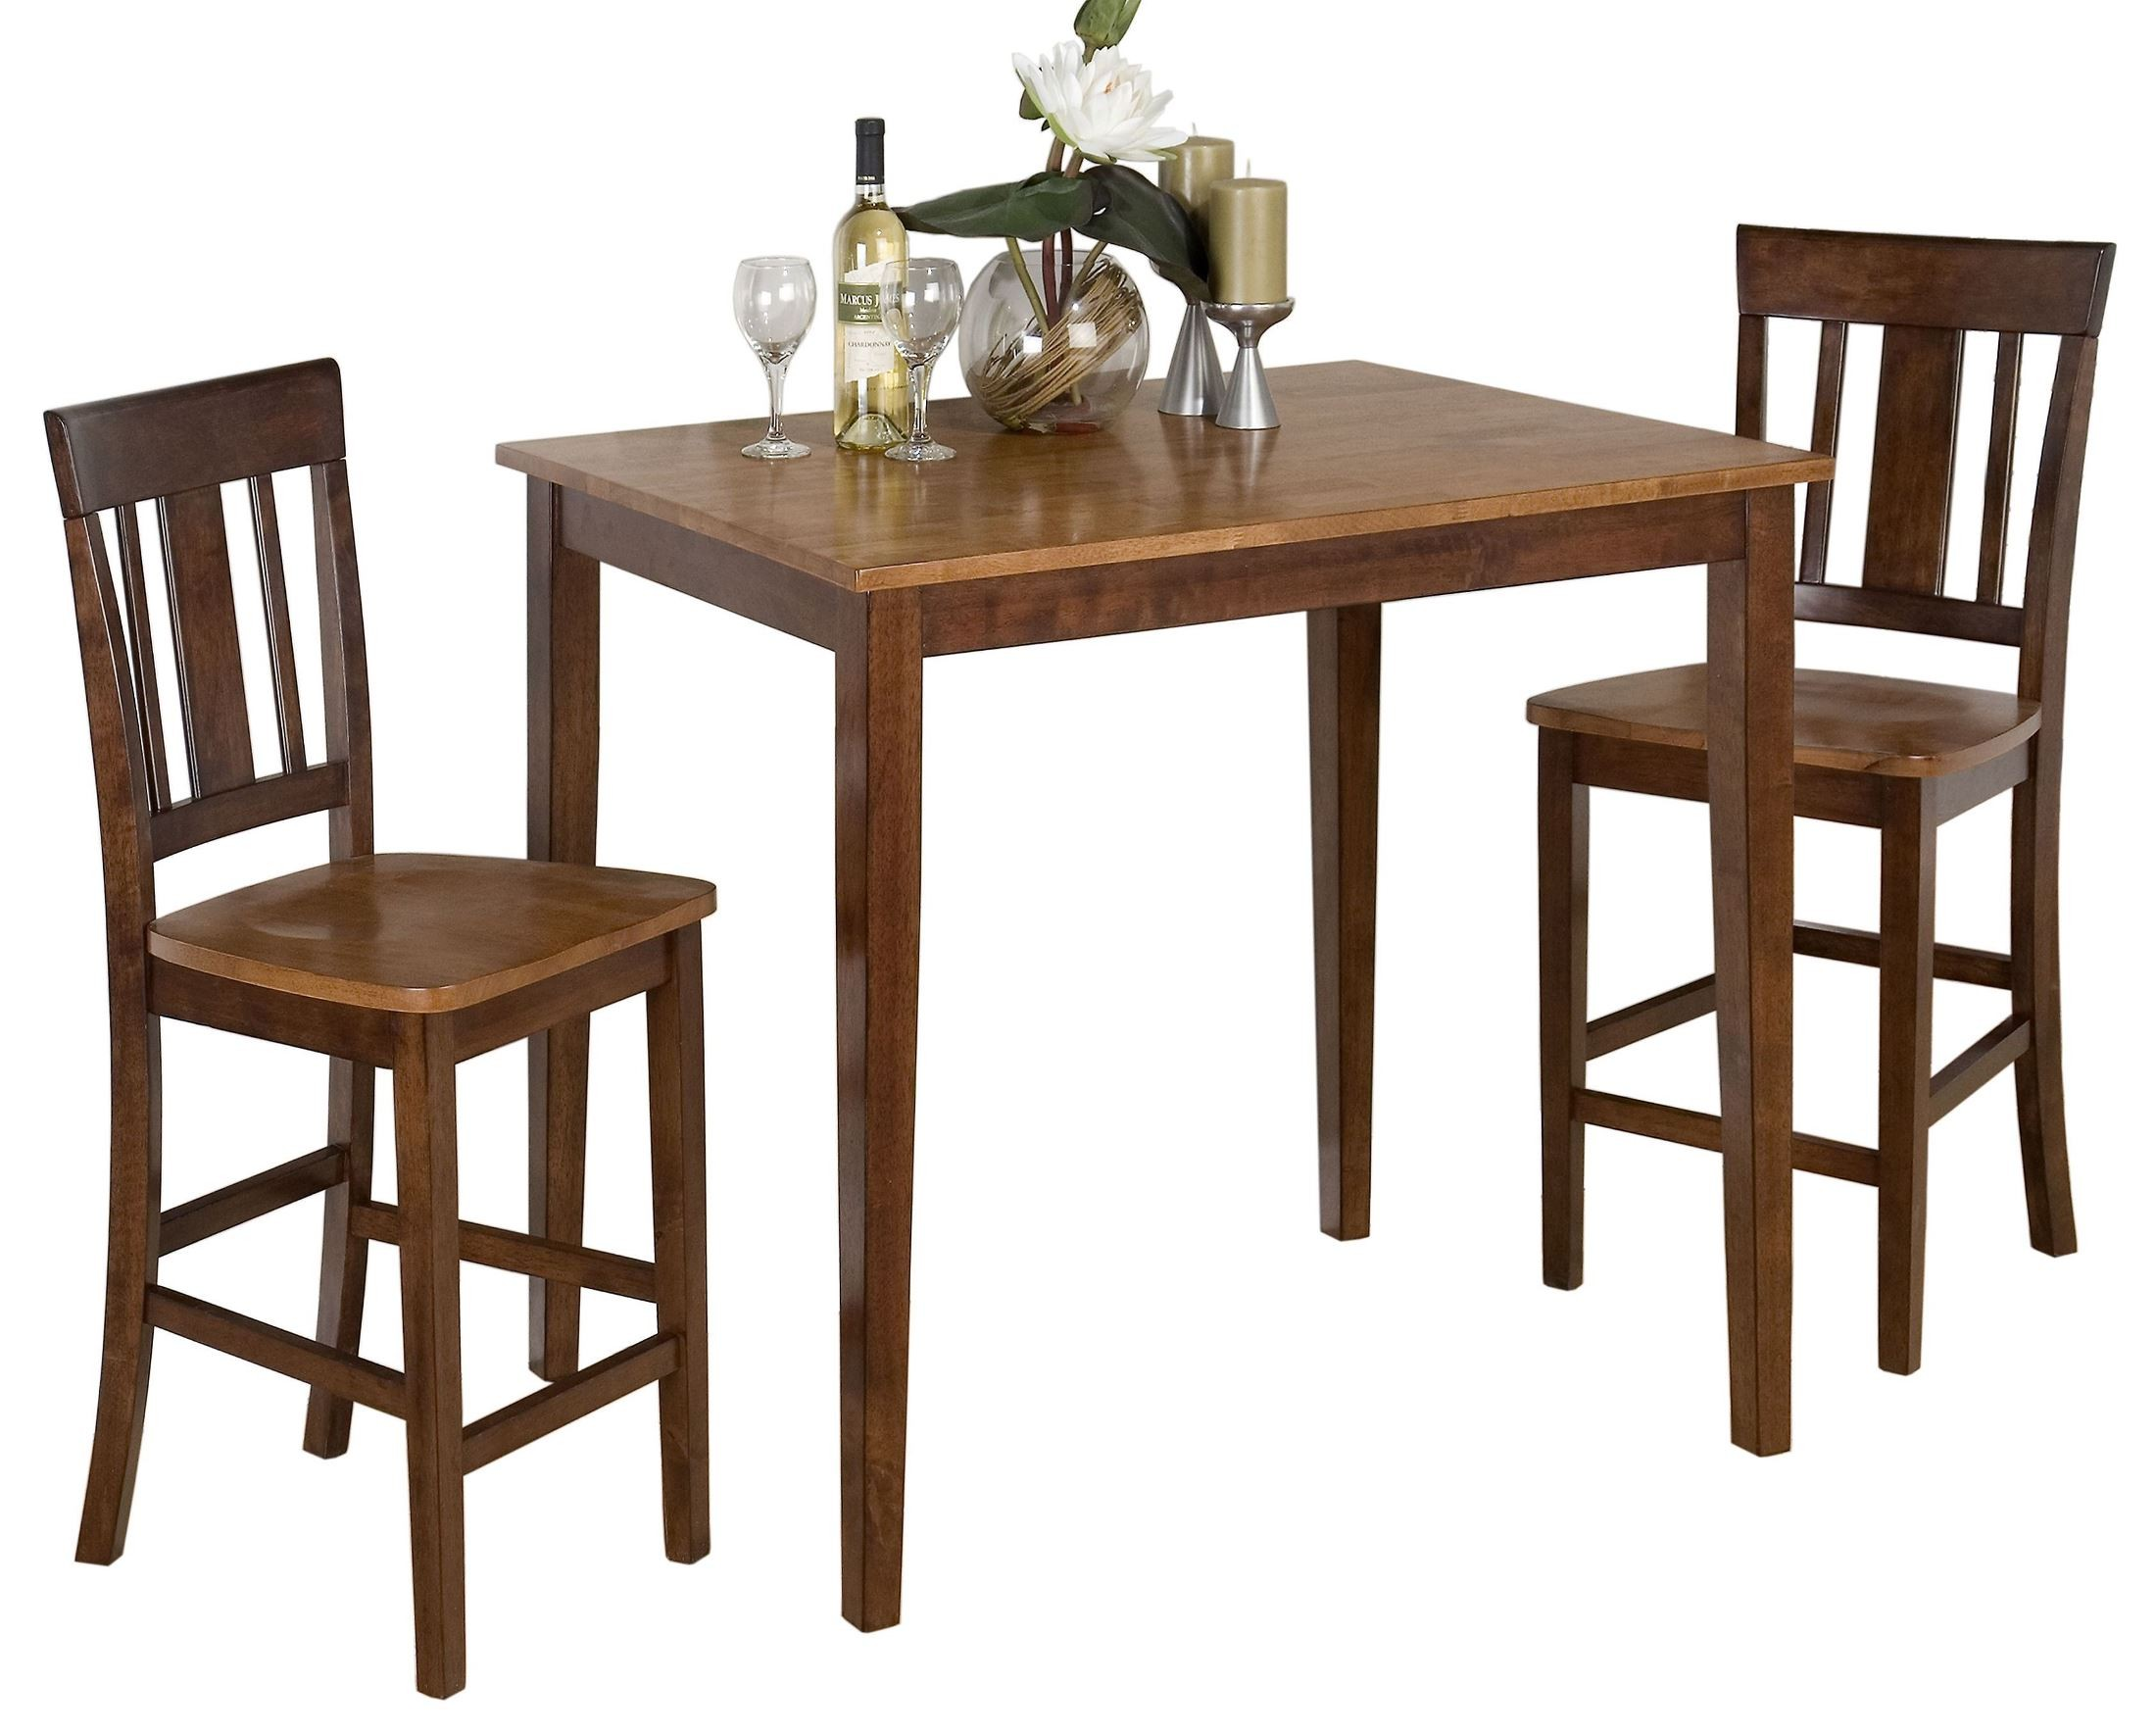 kura espresso and canyon gold counter height dining table 875 30 jofran. Black Bedroom Furniture Sets. Home Design Ideas